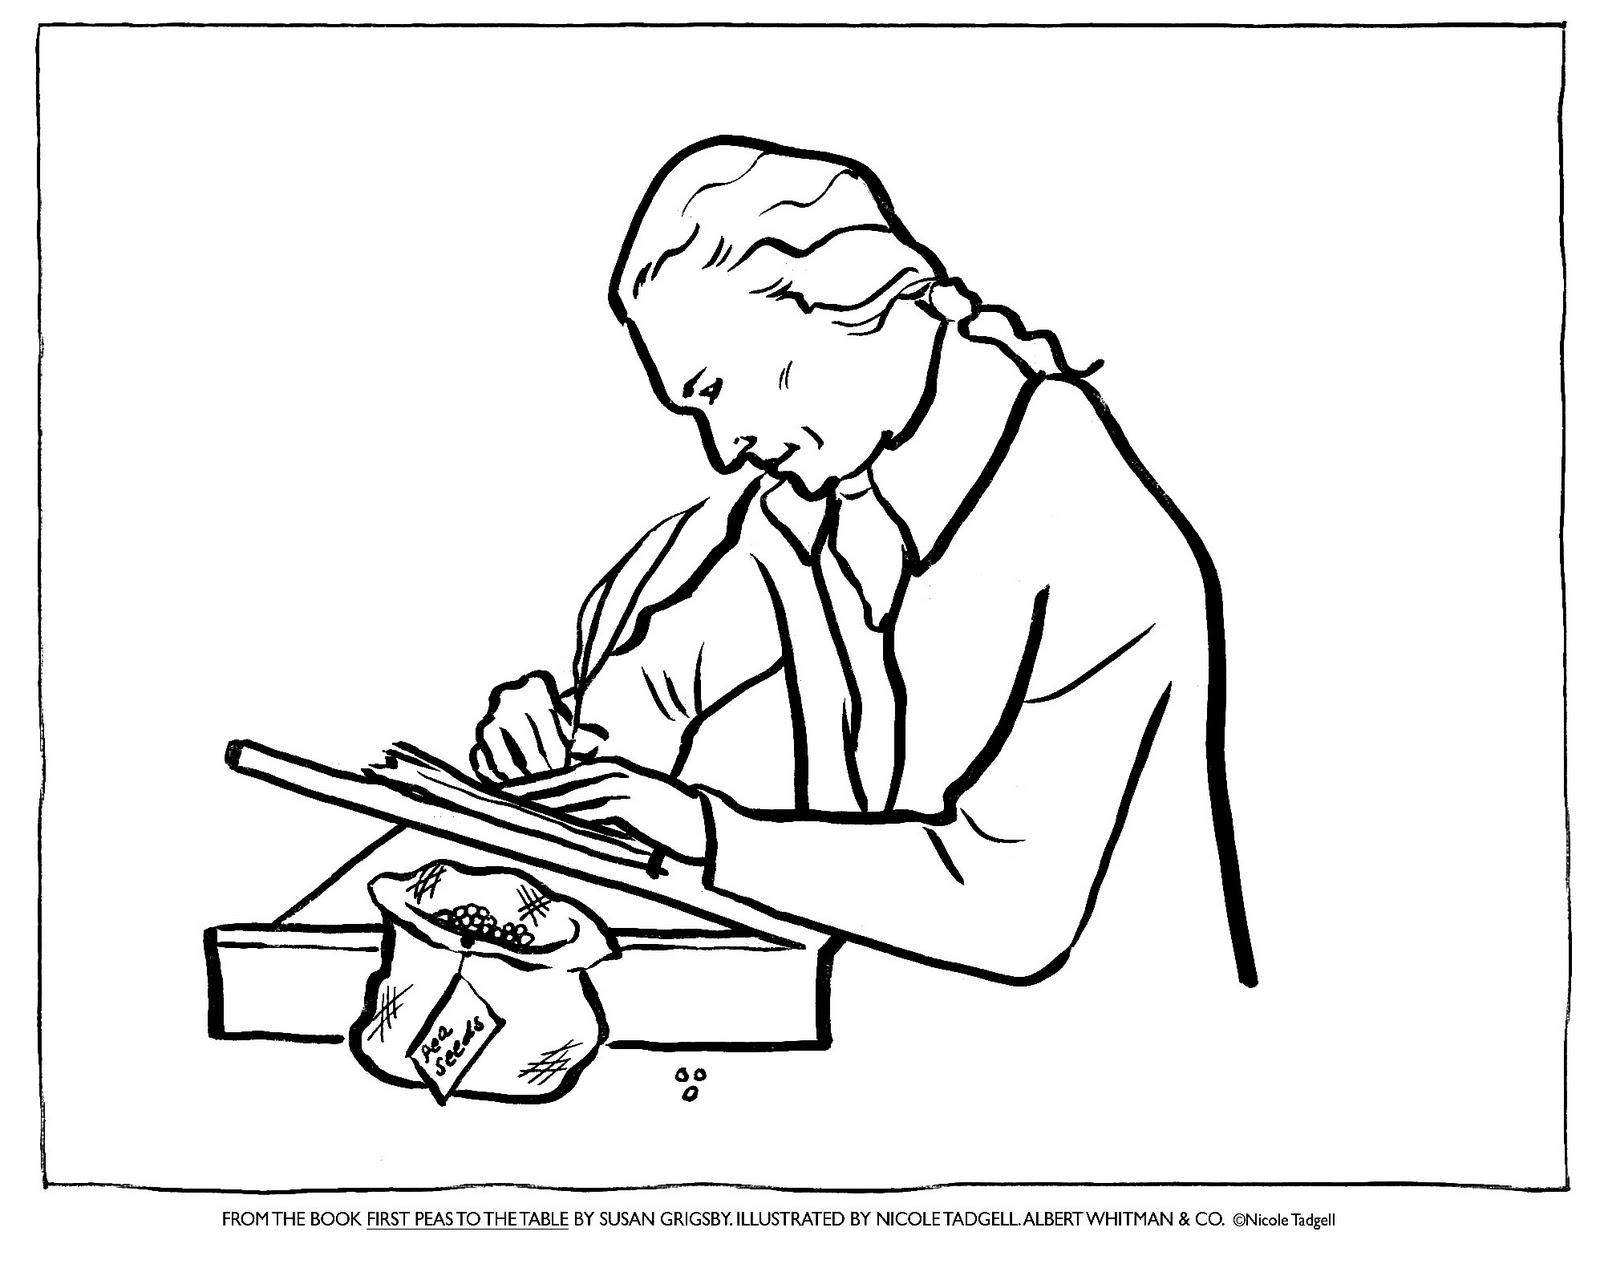 Nicole Tadgell Illustration Coloring Pages for First Peas to the